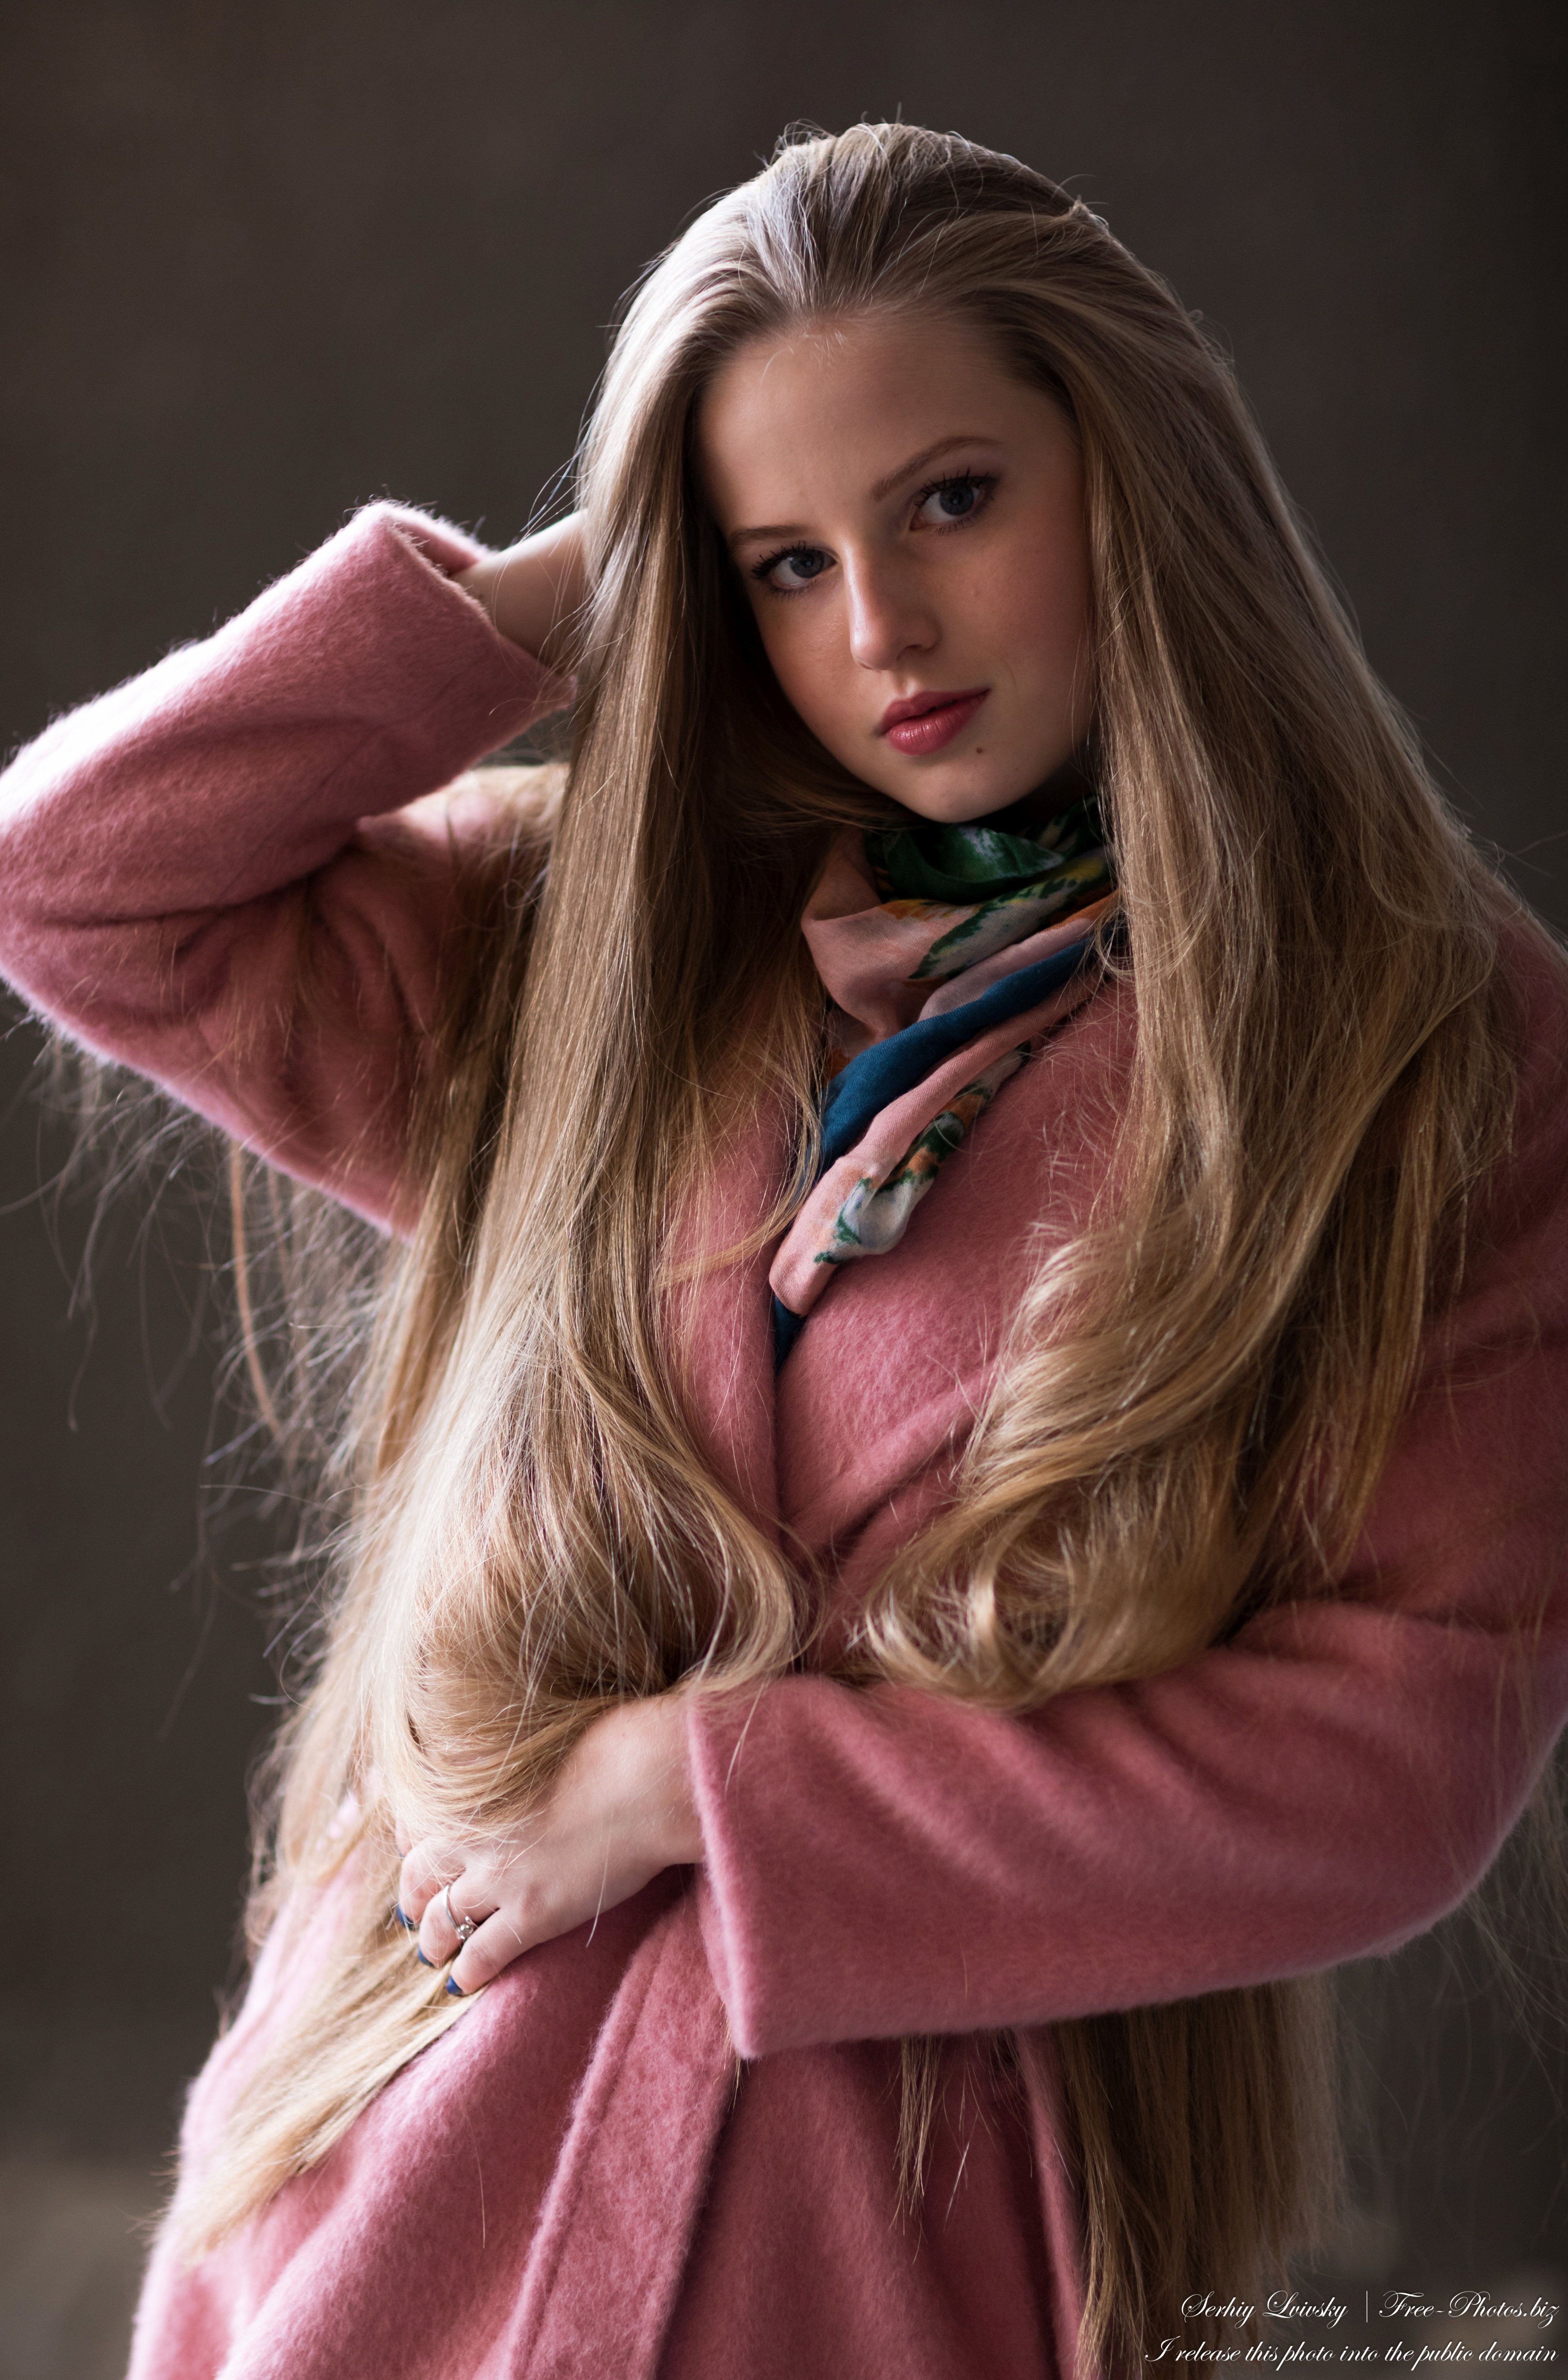 diana_an_18-year-old_natural_blonde_girl_photographed_in_oct_2020_by_serhiy_lvivsky_14